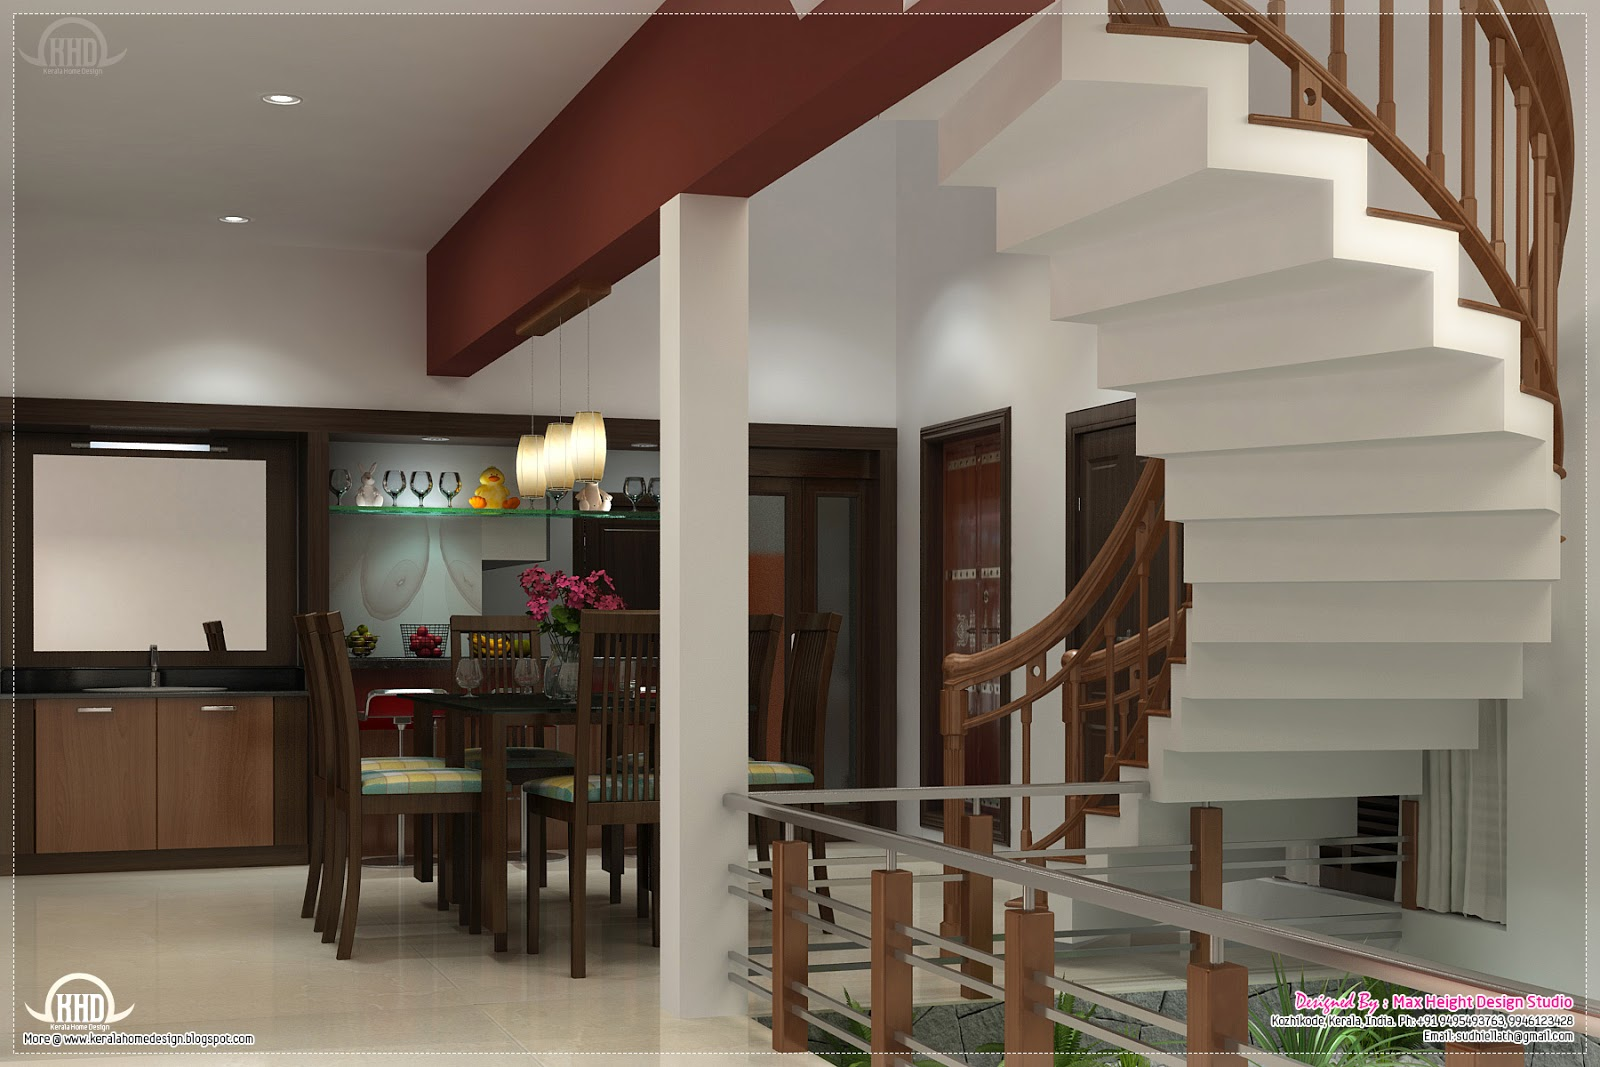 Home interior design ideas kerala home design and floor plans - House interior designs ...